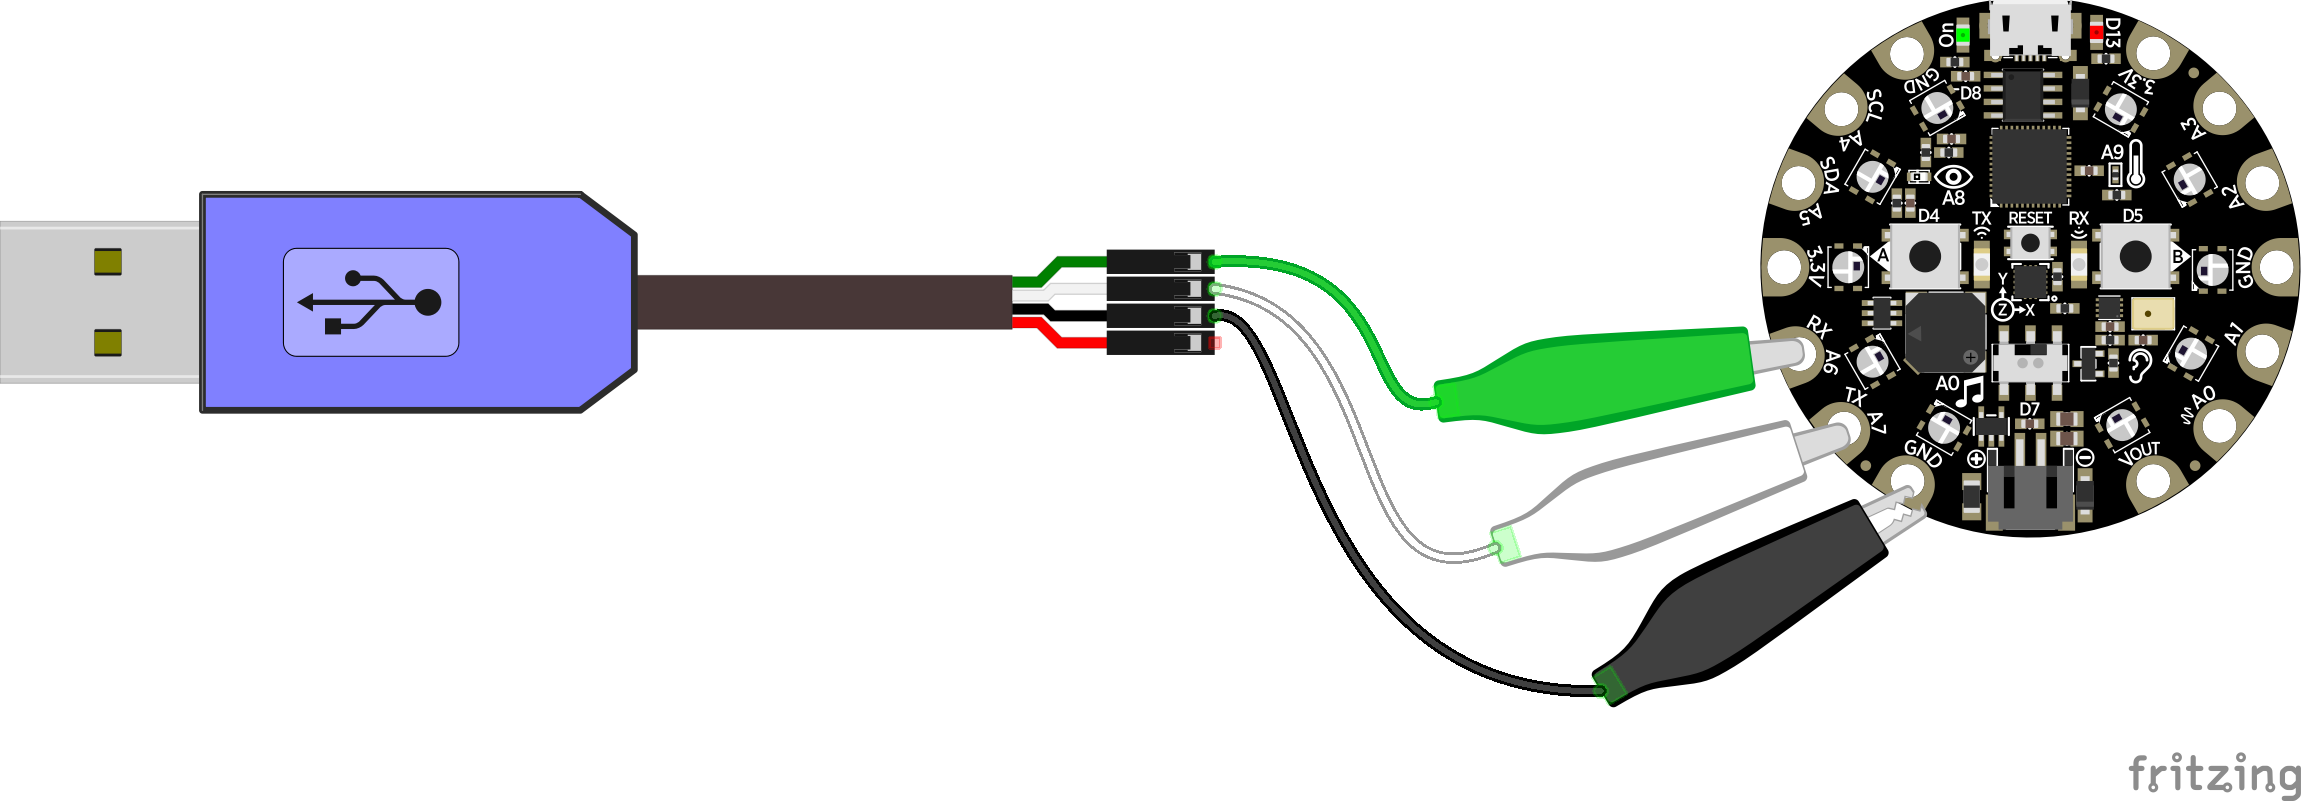 makecode_Serial-to-cable_bb.png